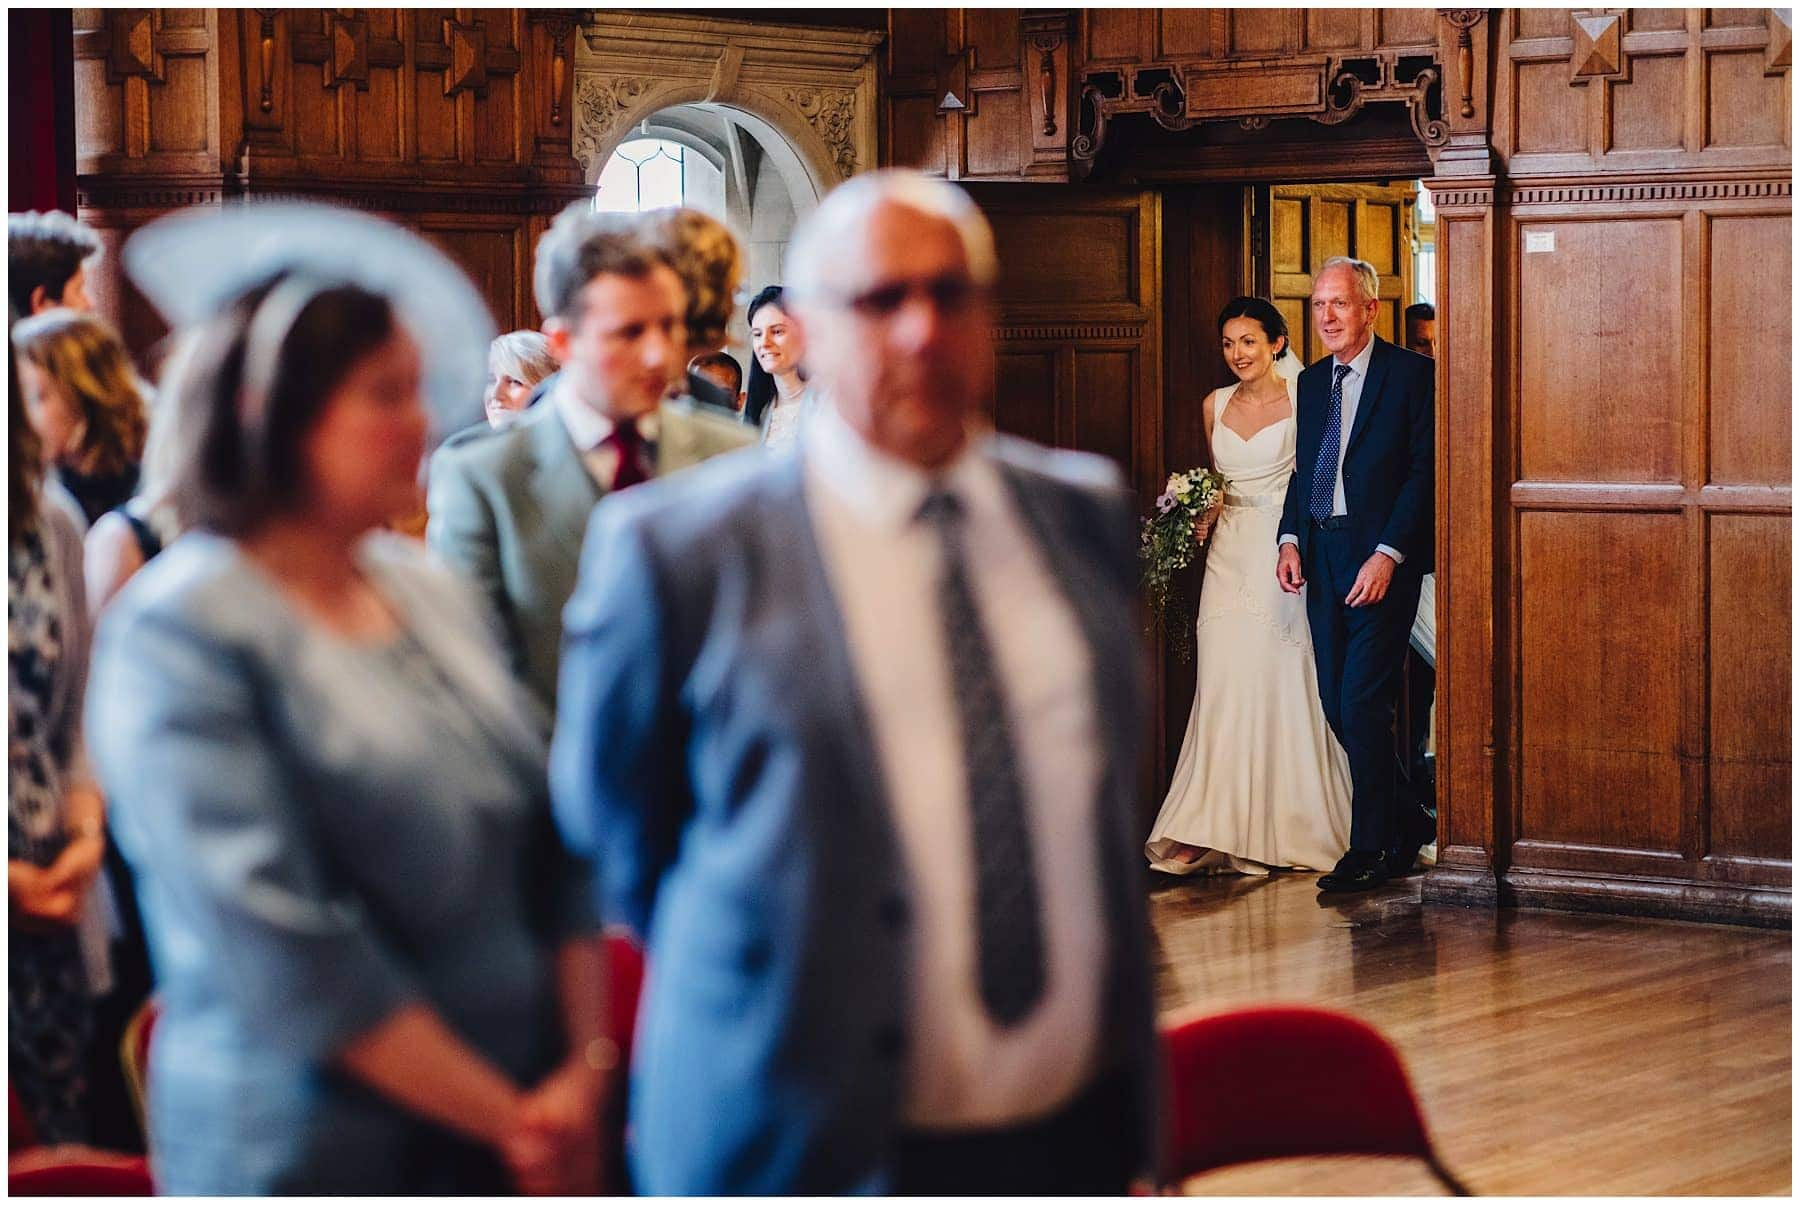 Oxfordshire wedding Photographer J S Coates Wedding Photography. Oxford Town Hall & The Perch Pub 31